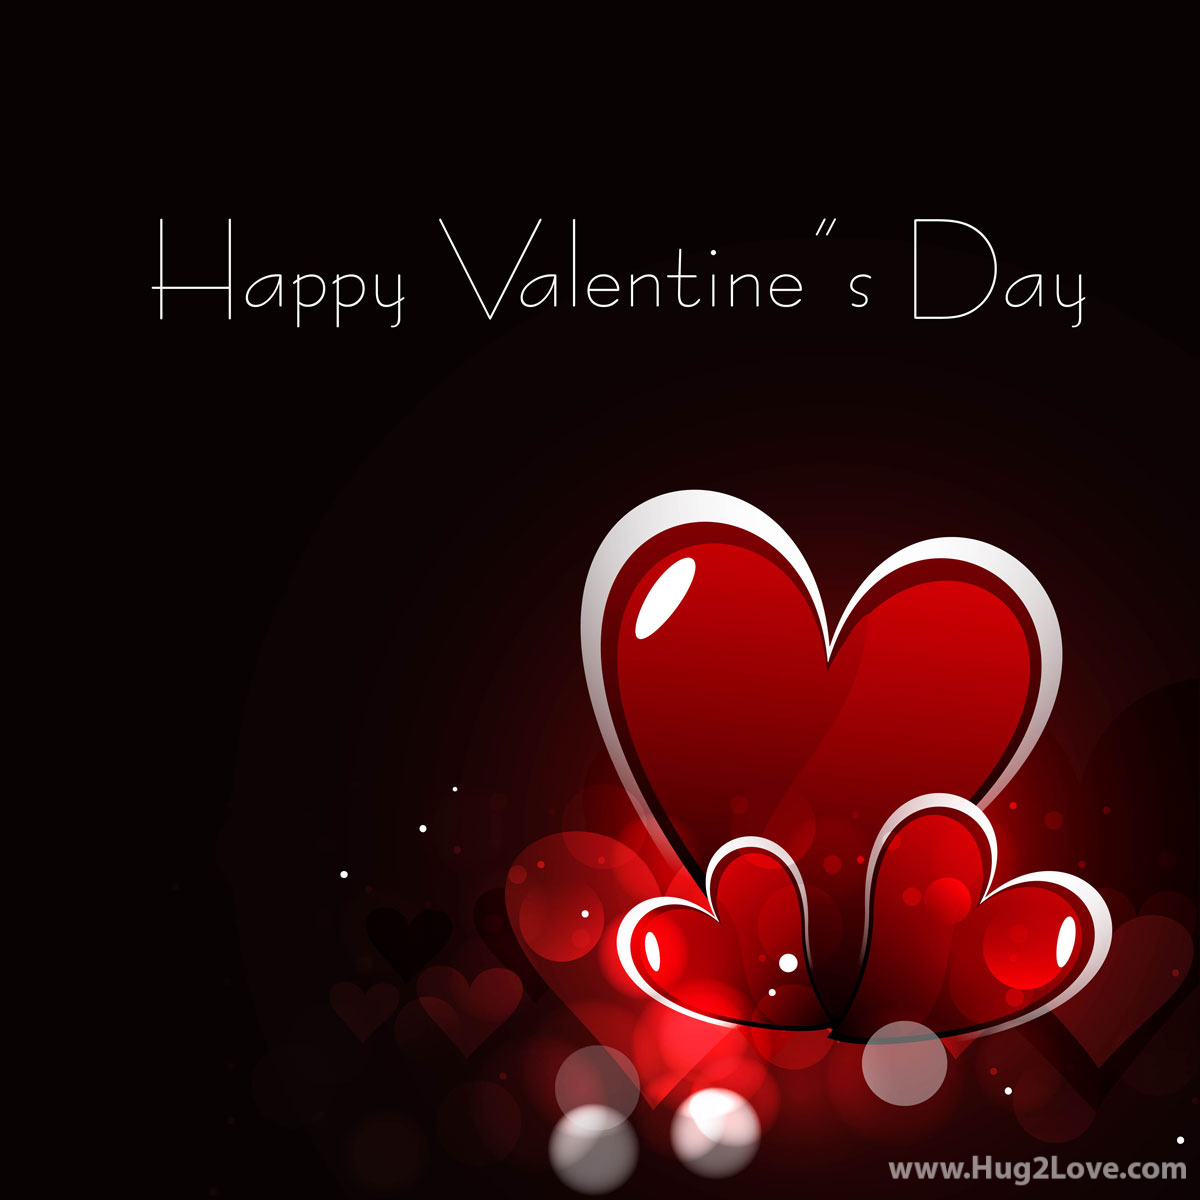 Best Love Hd Wallpapers With Quotes 100 Happy Valentine S Day Images Amp Wallpapers 2018